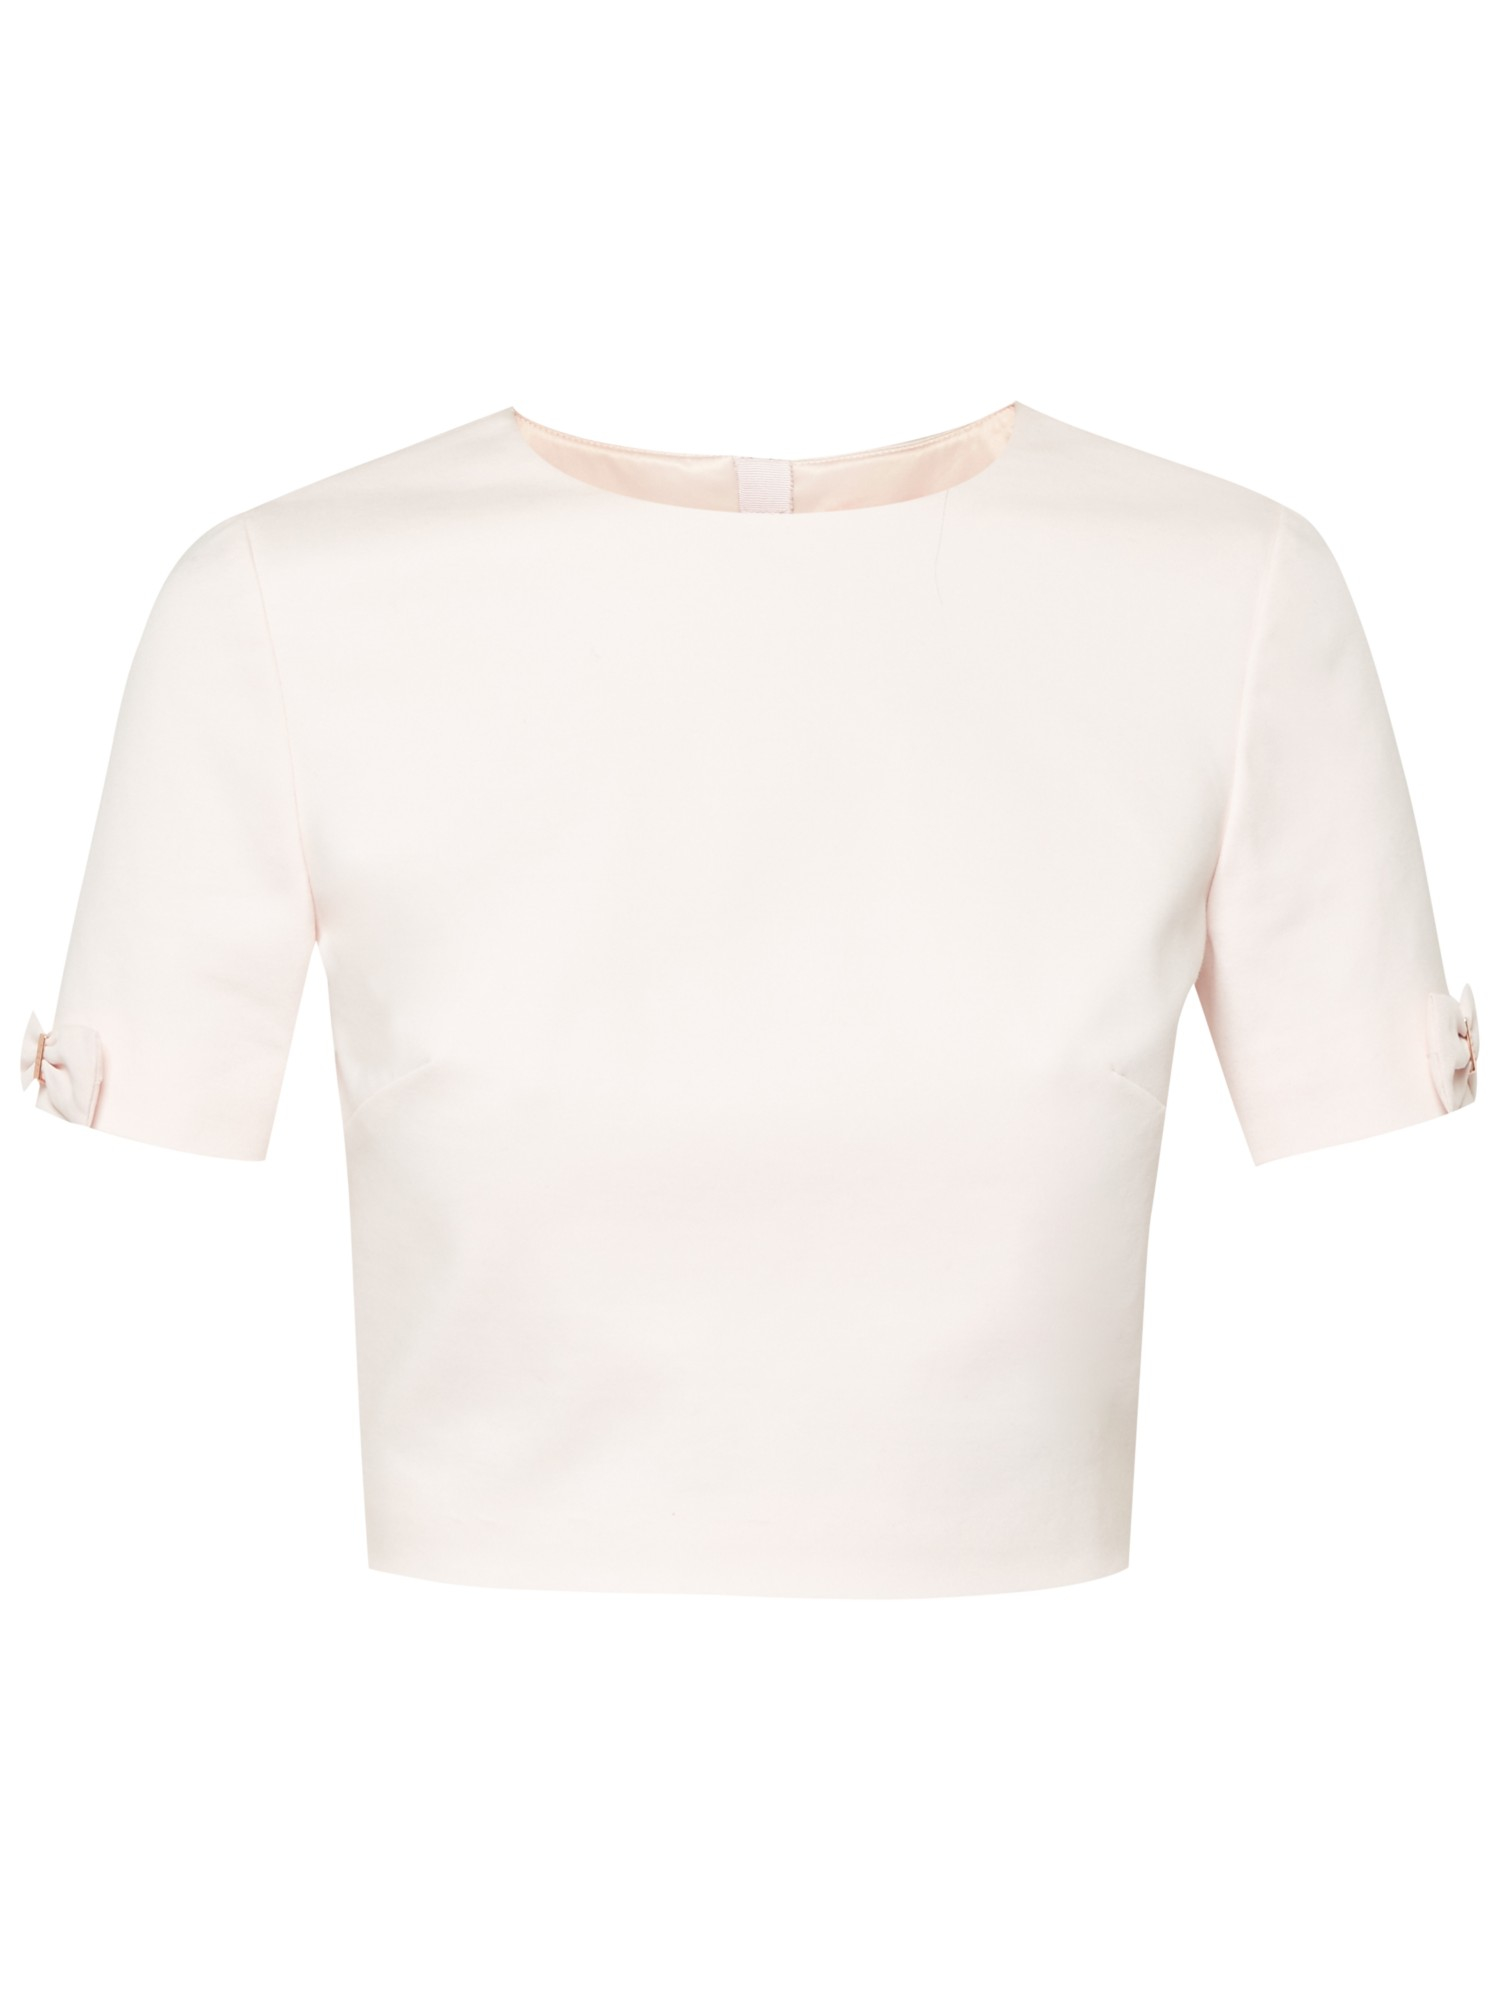 ac7083e9a4bcab Ted Baker Cropped Top